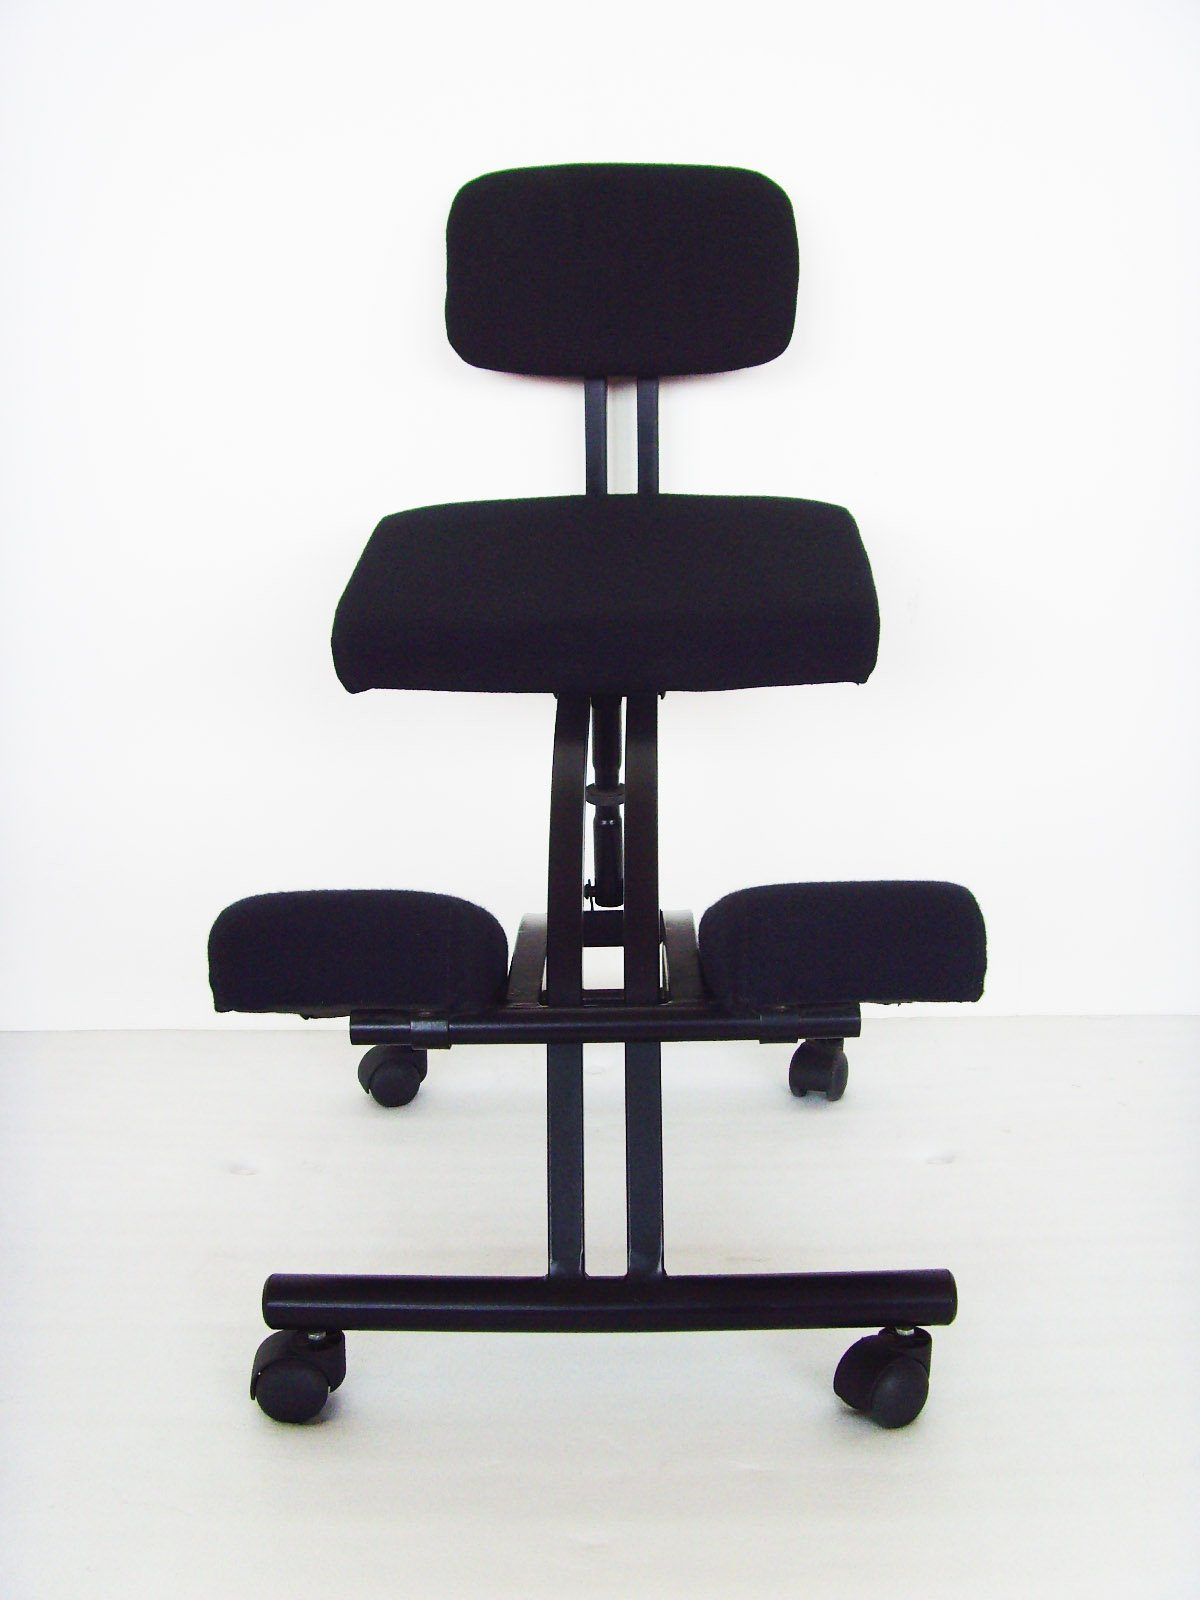 Ergonomic Kneeling Chair - Evopia